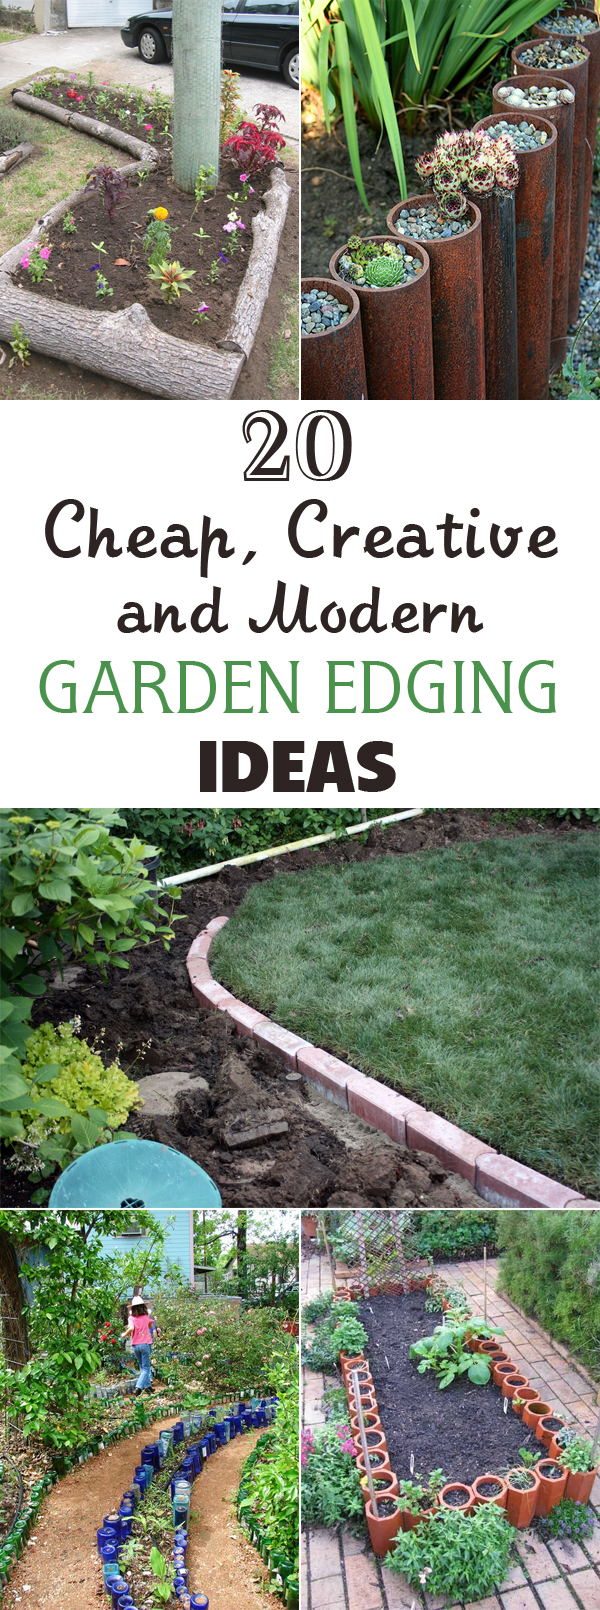 garden edging is a landscaping technique wherein an edge partition or